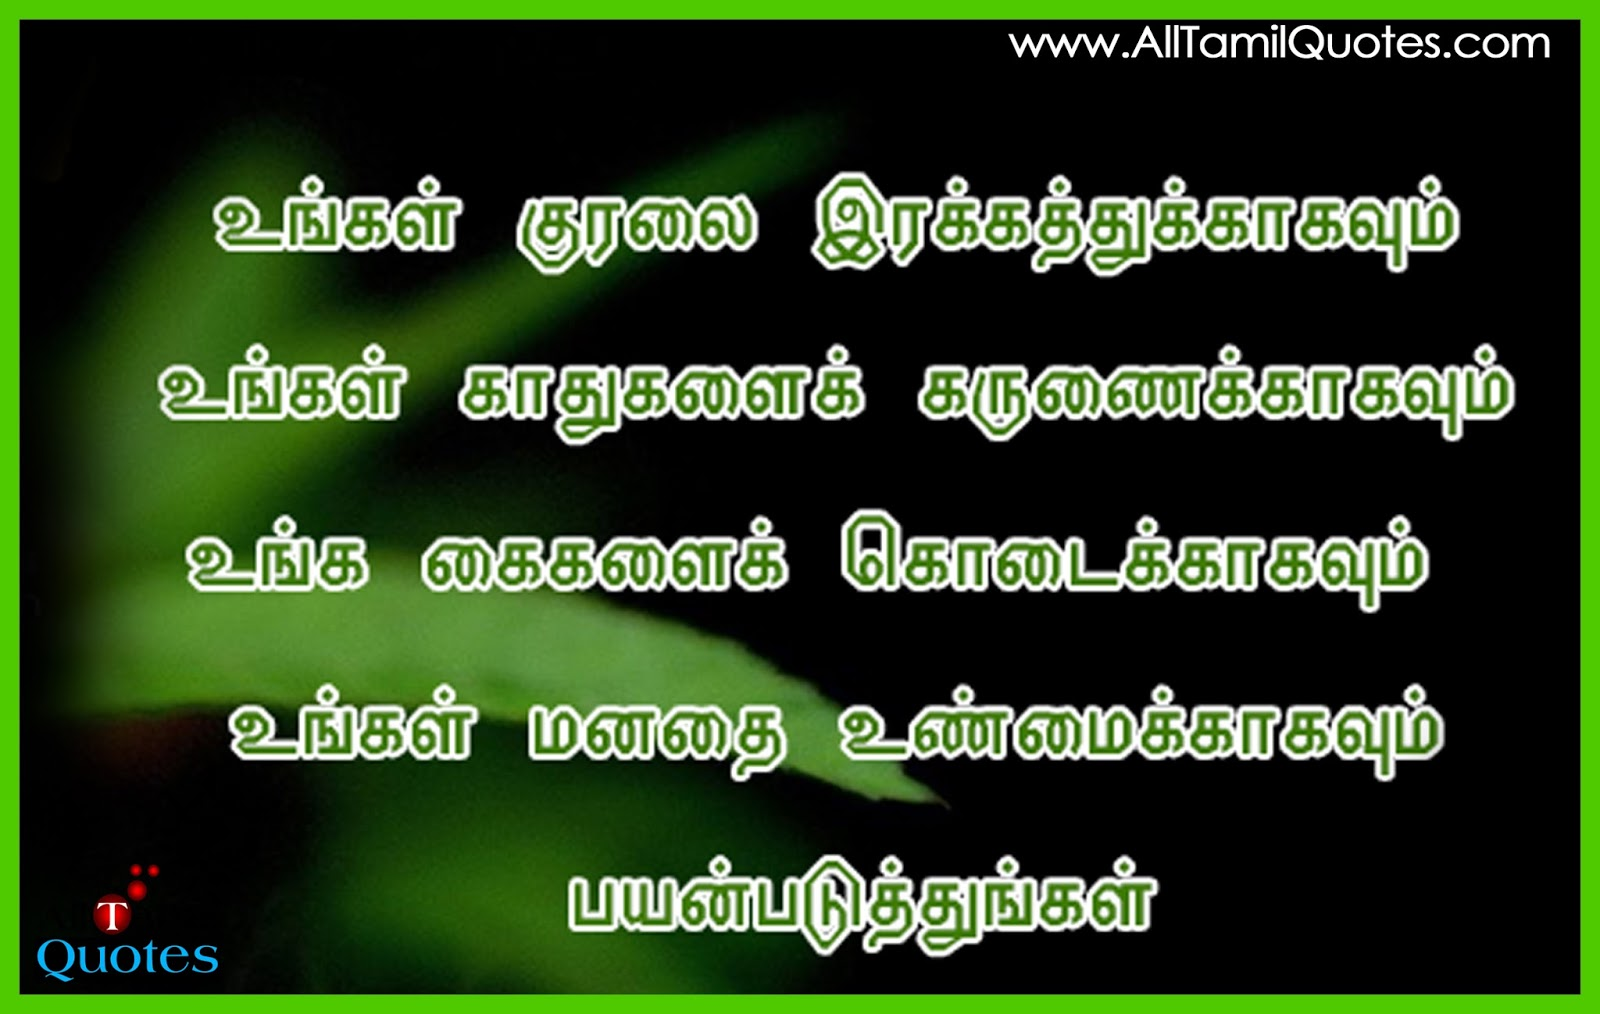 Gandhi Wallpapers With Quotes Best Tamil Quotes About Heart Beat